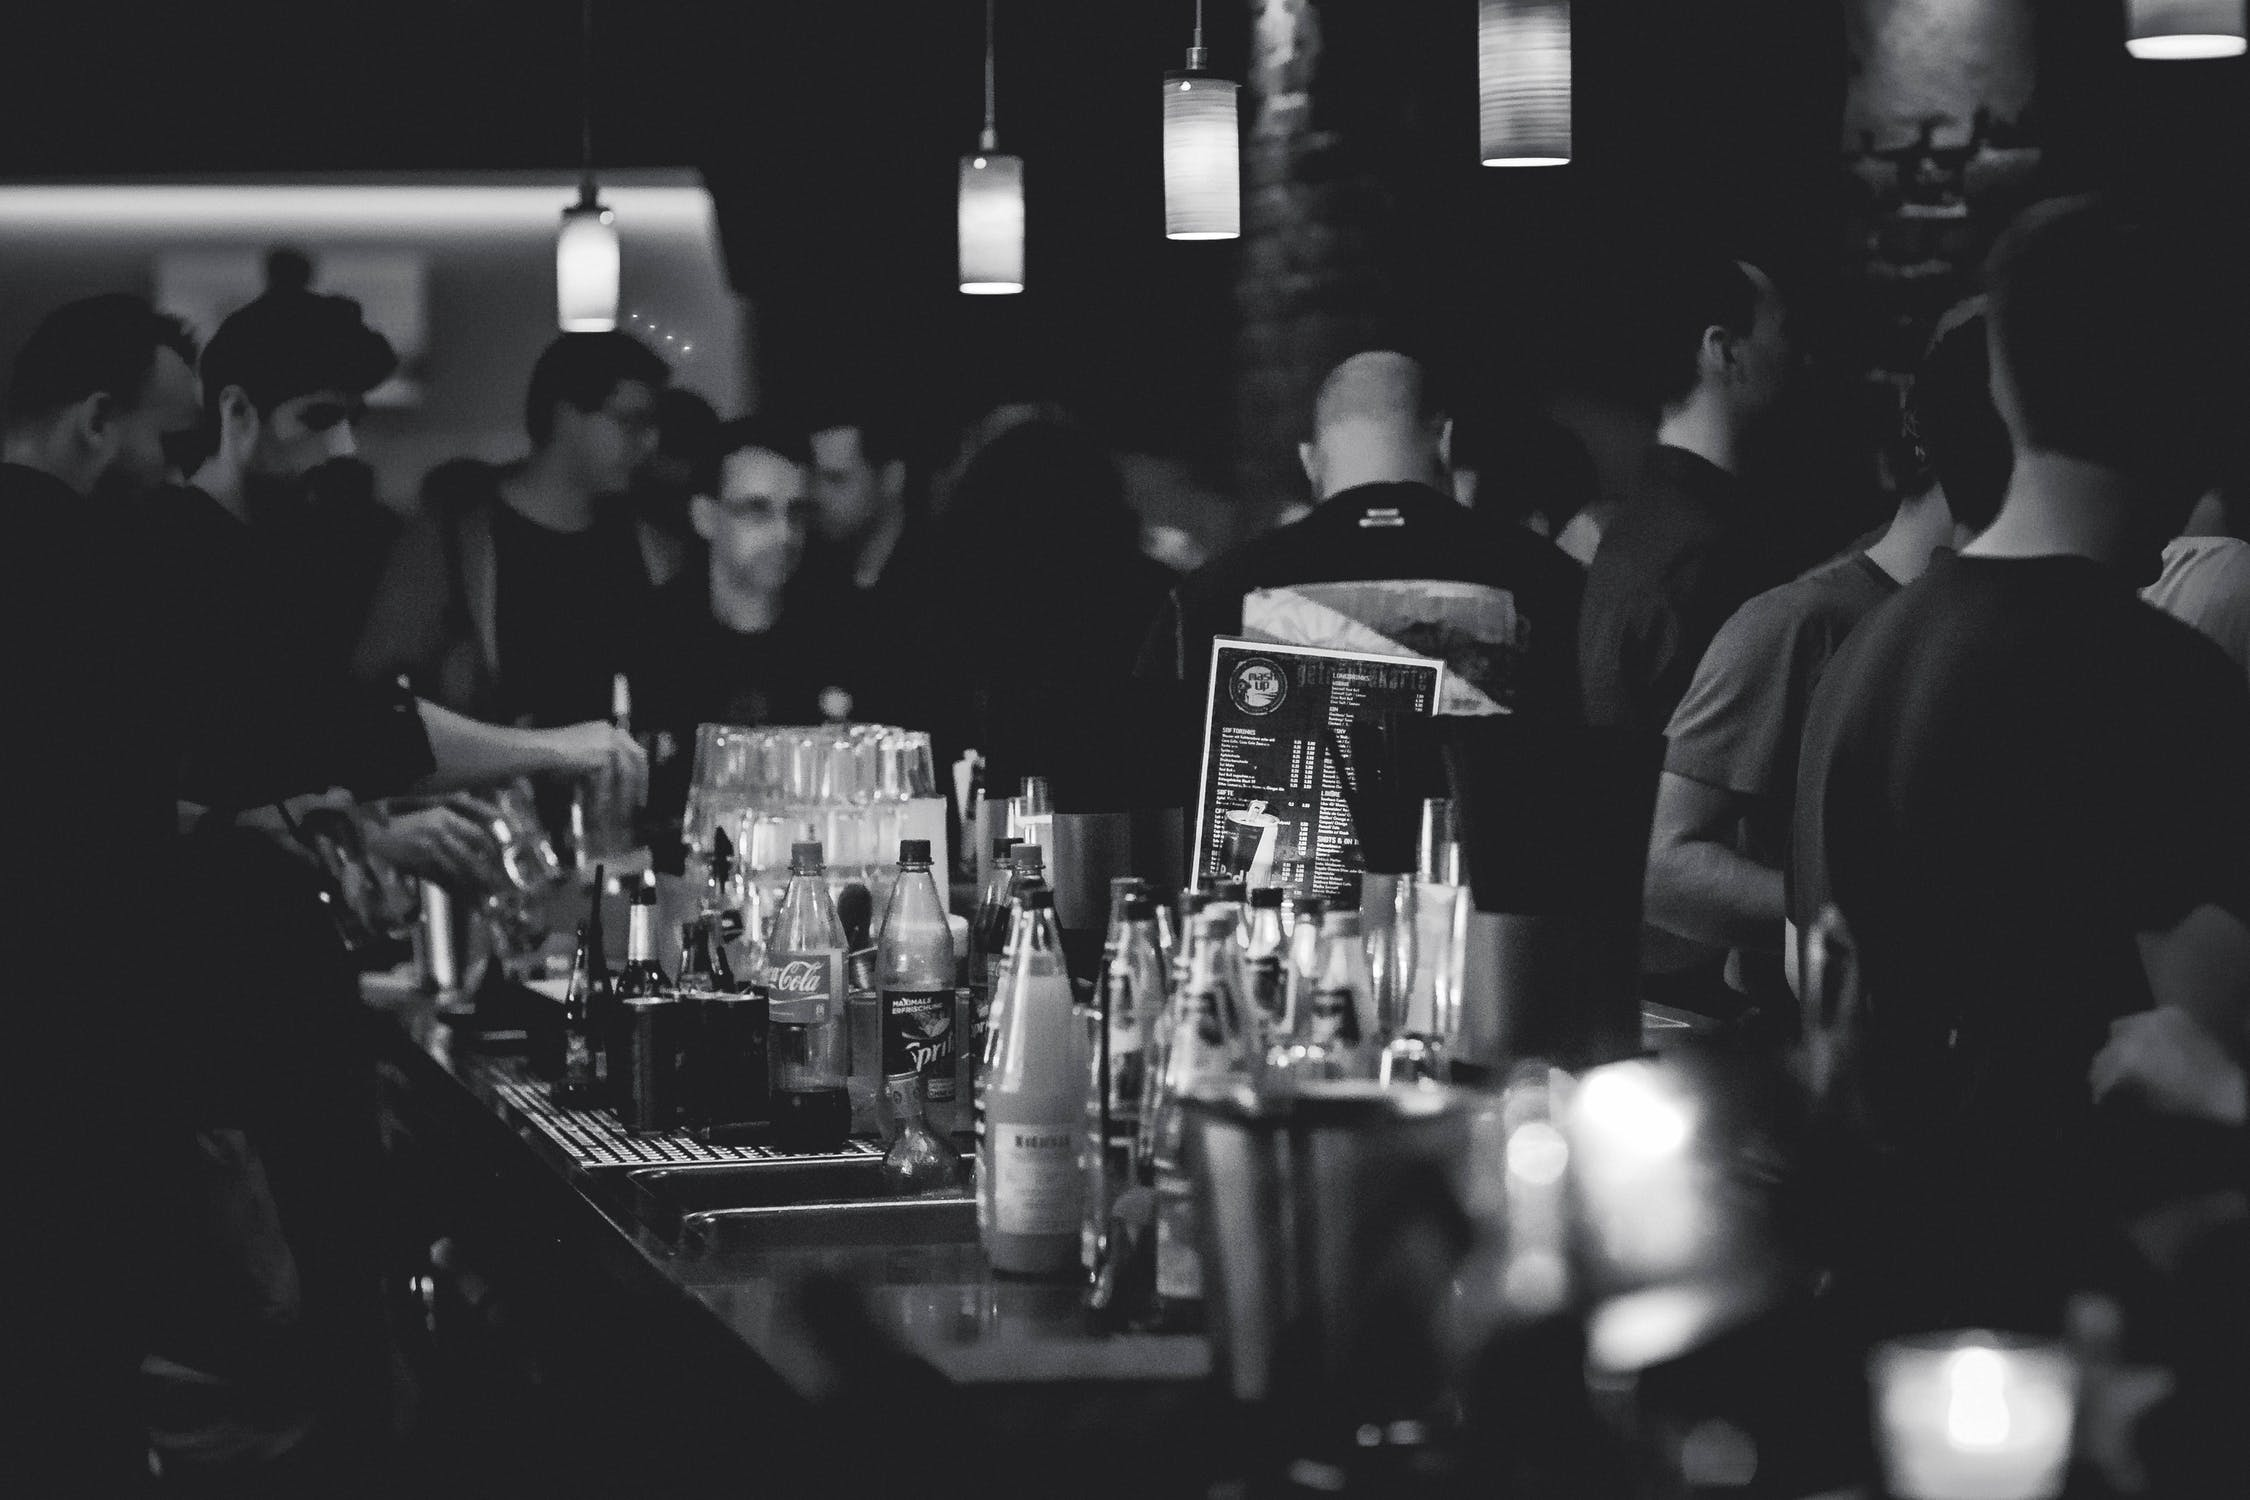 A bar - one of the most popular NJ places for singles